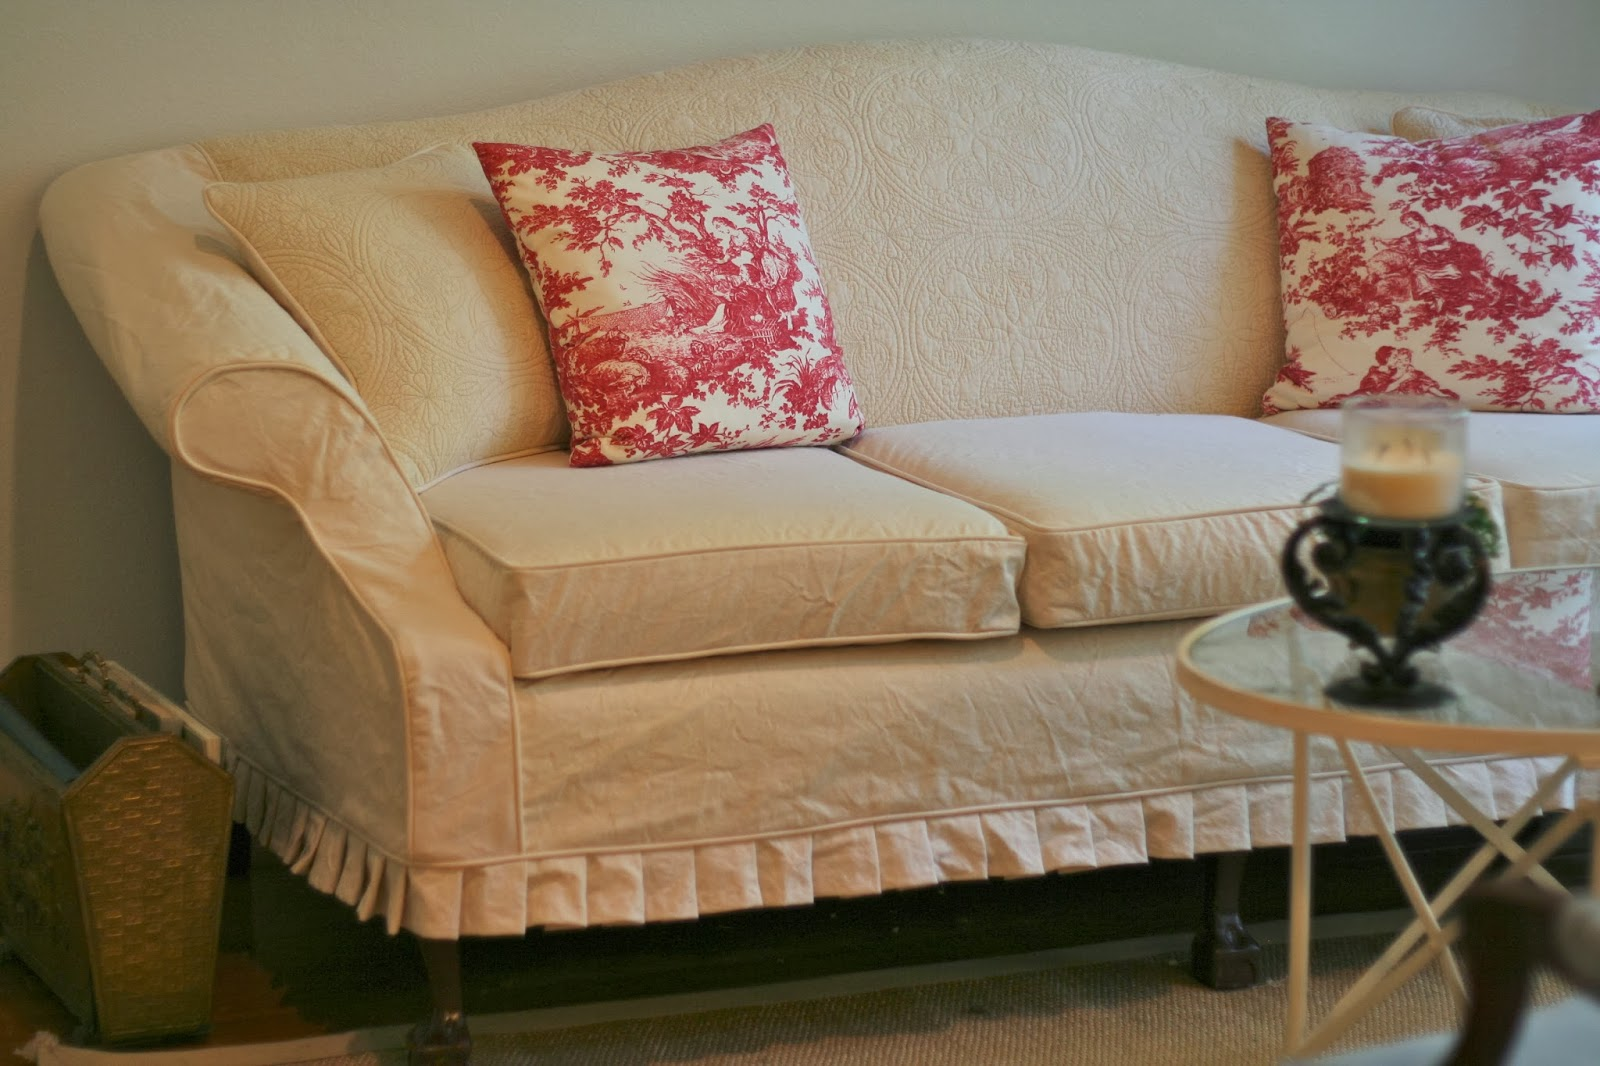 Camelback Sofa Slipcovers 3 Cushion Pictures To Pin On